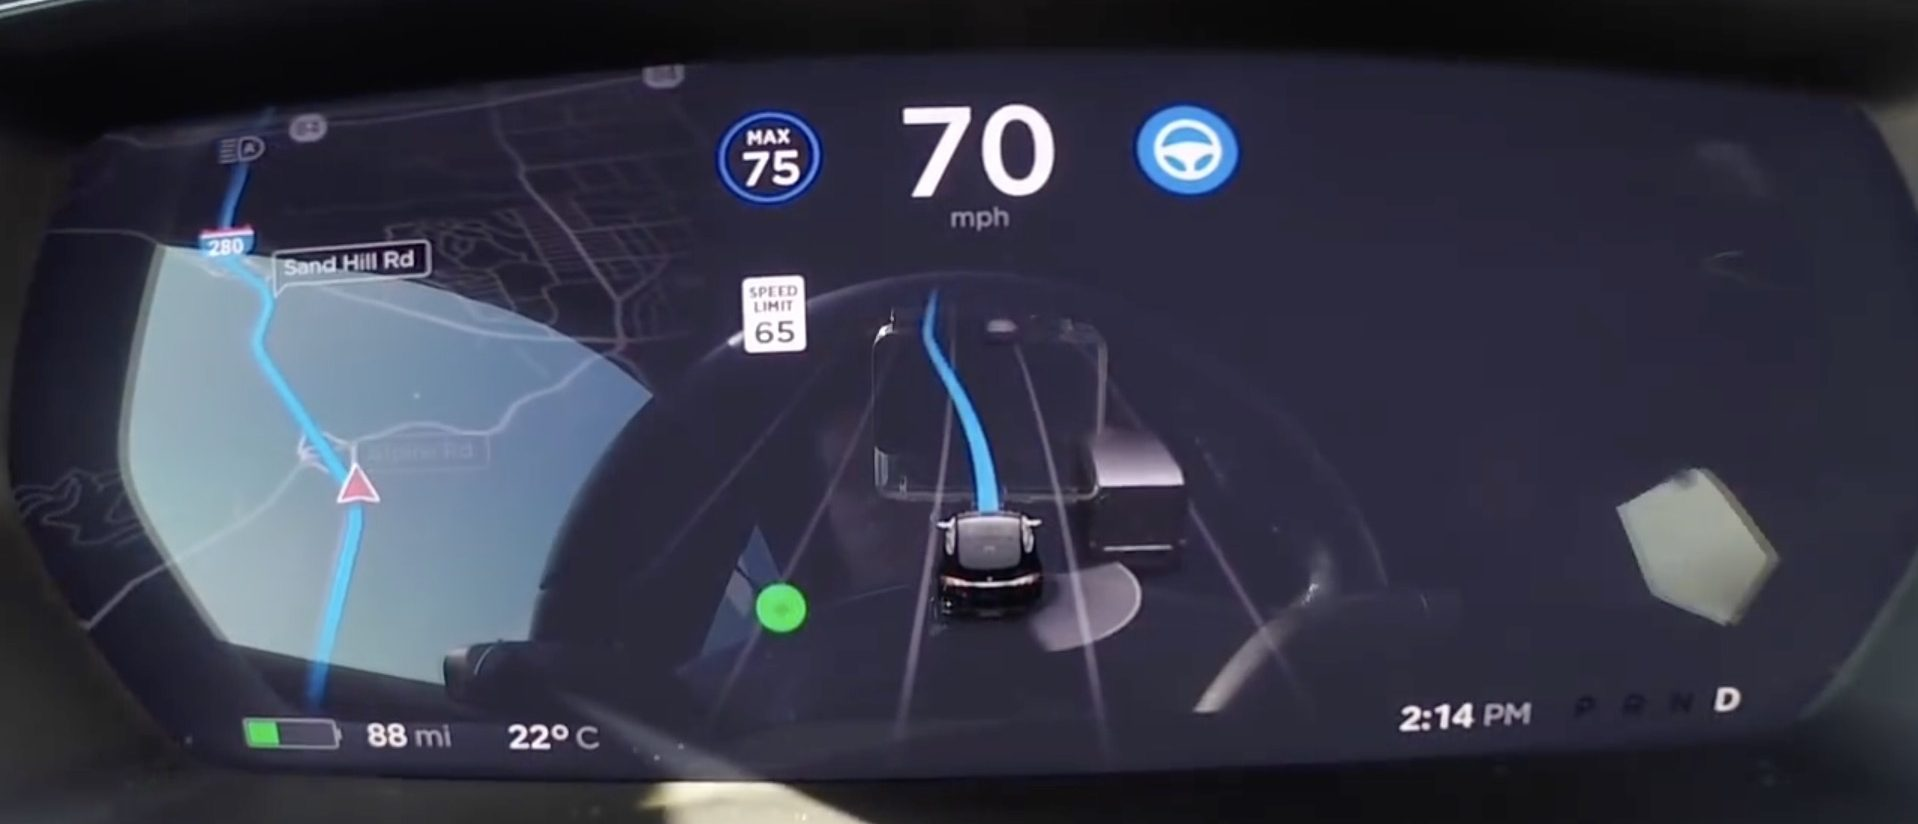 Tesla starts rolling out new Navigate on Autopilot and Enhanced Summon features